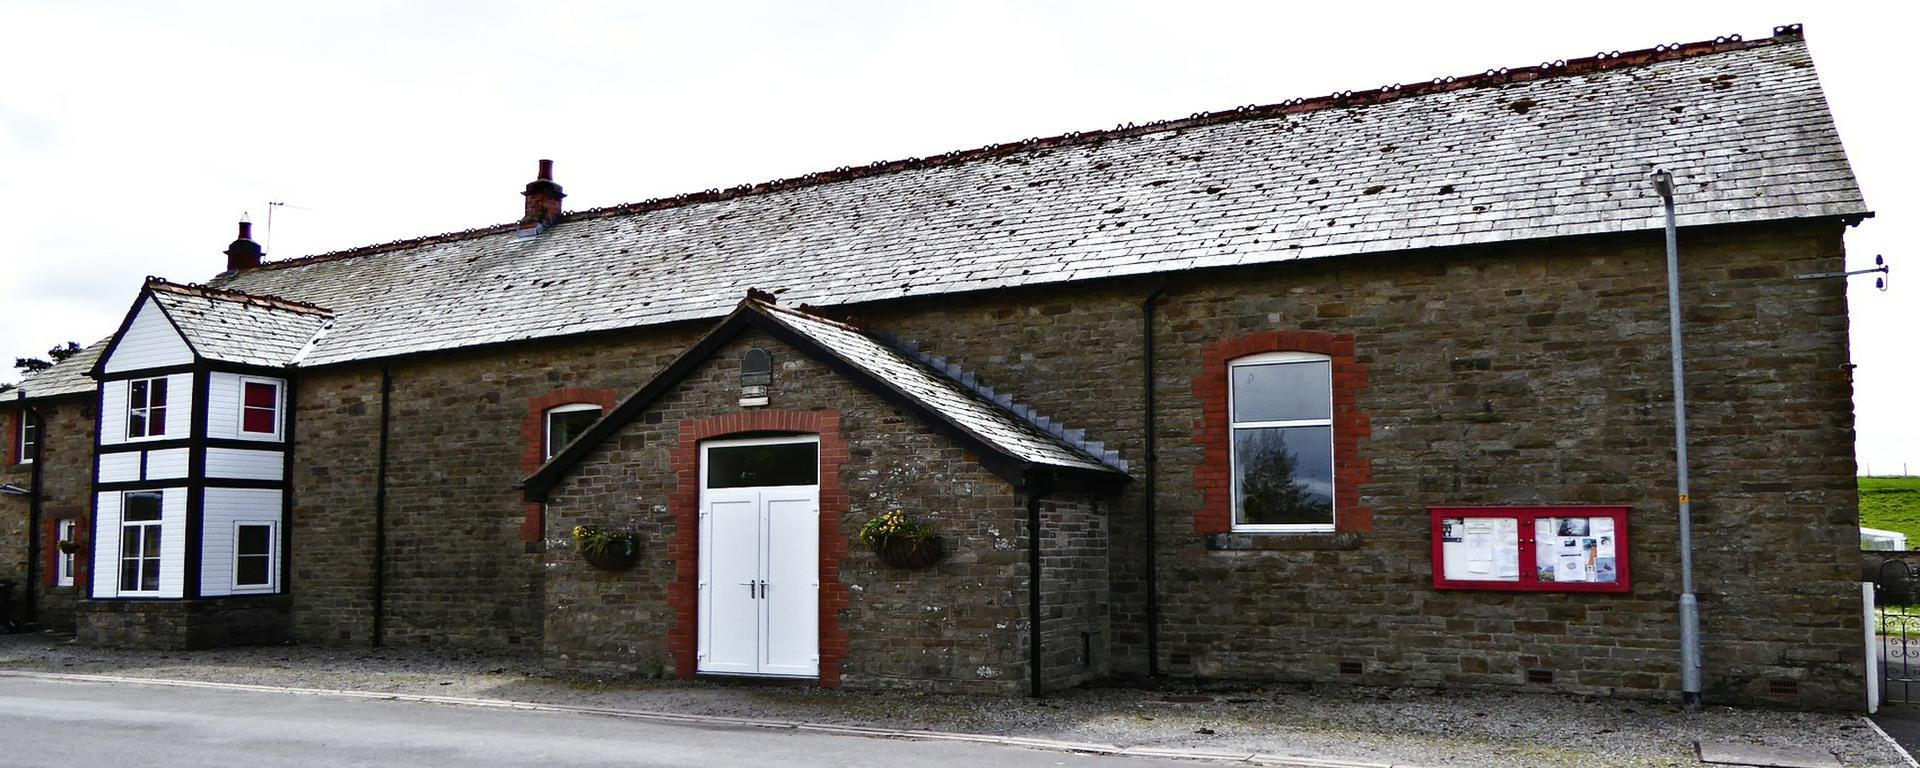 Lacy Thompson Memorial Hall (Farlam Village Hall)